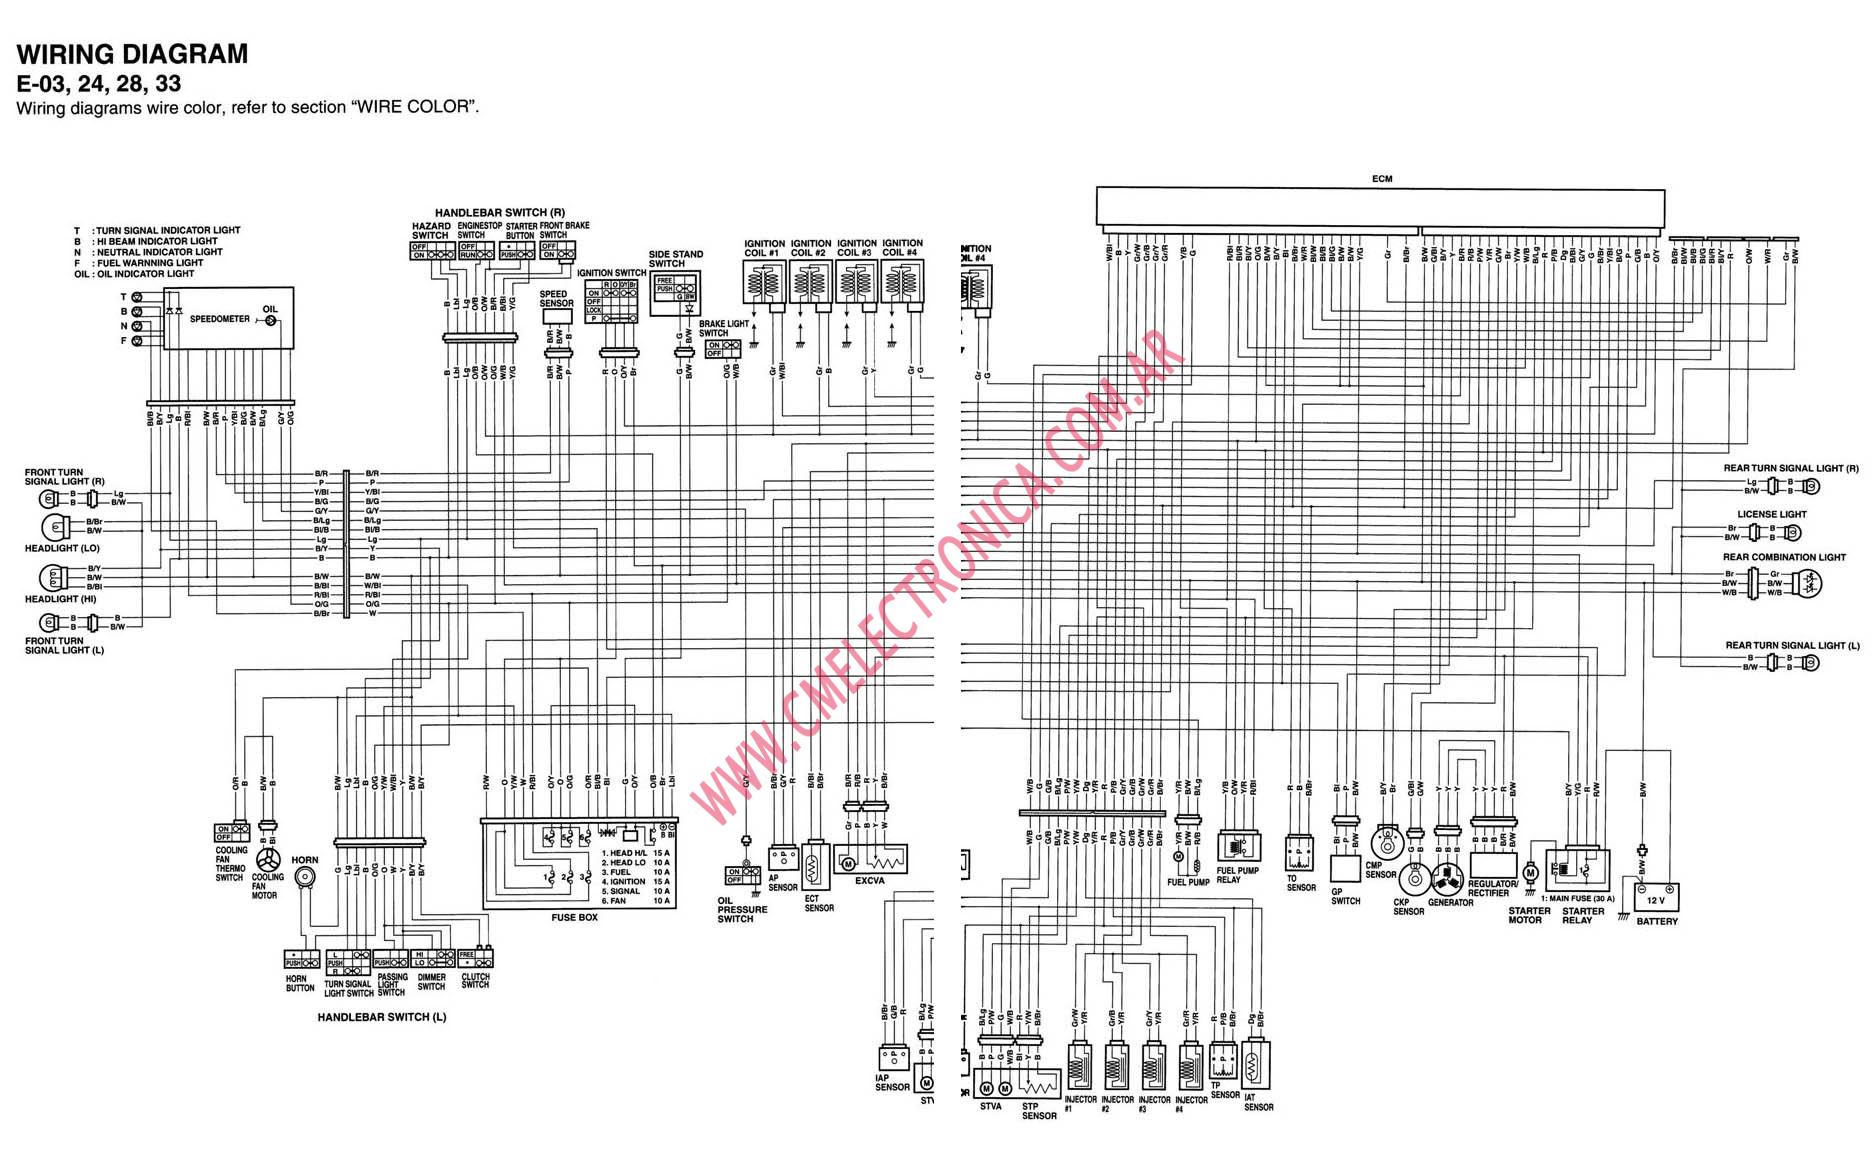 2006 Gsxr 1000 Wiring Diagram Daily Update Cole Hersee 956 9100 Switch 07 750 Free Engine Image For User